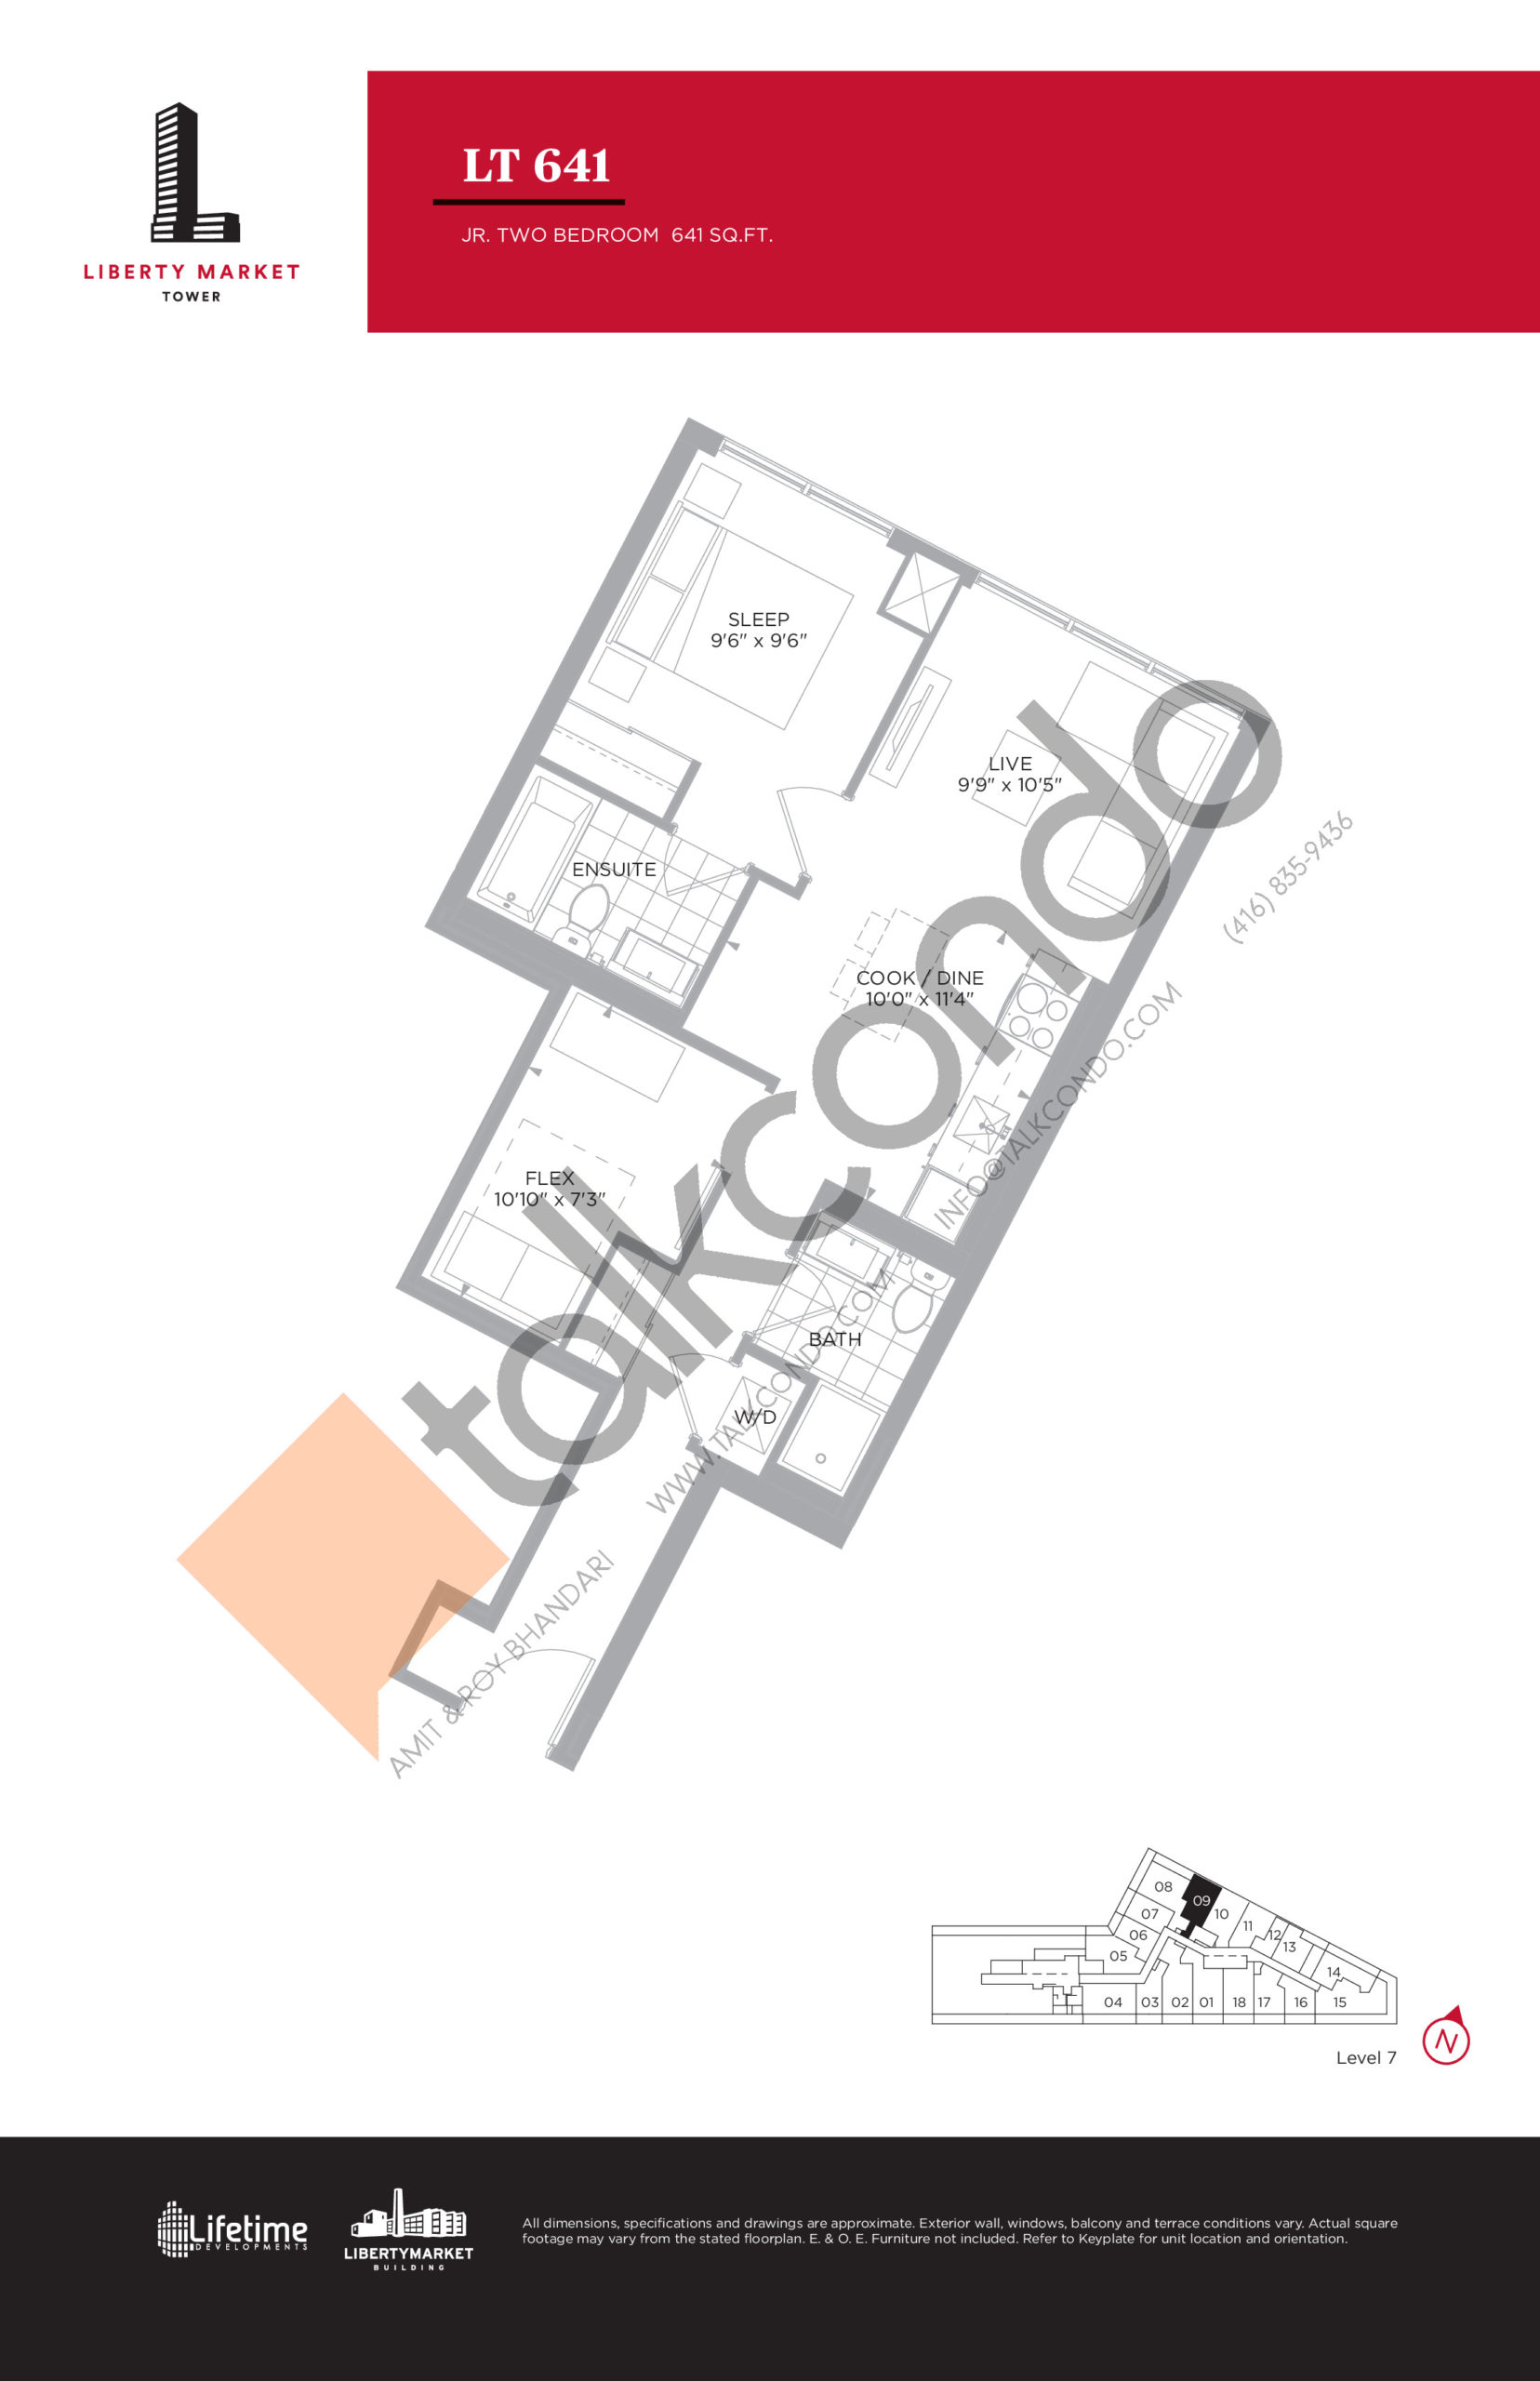 LT 641 - Tower Collection Floor Plan at Liberty Market Tower Condos - 641 sq.ft